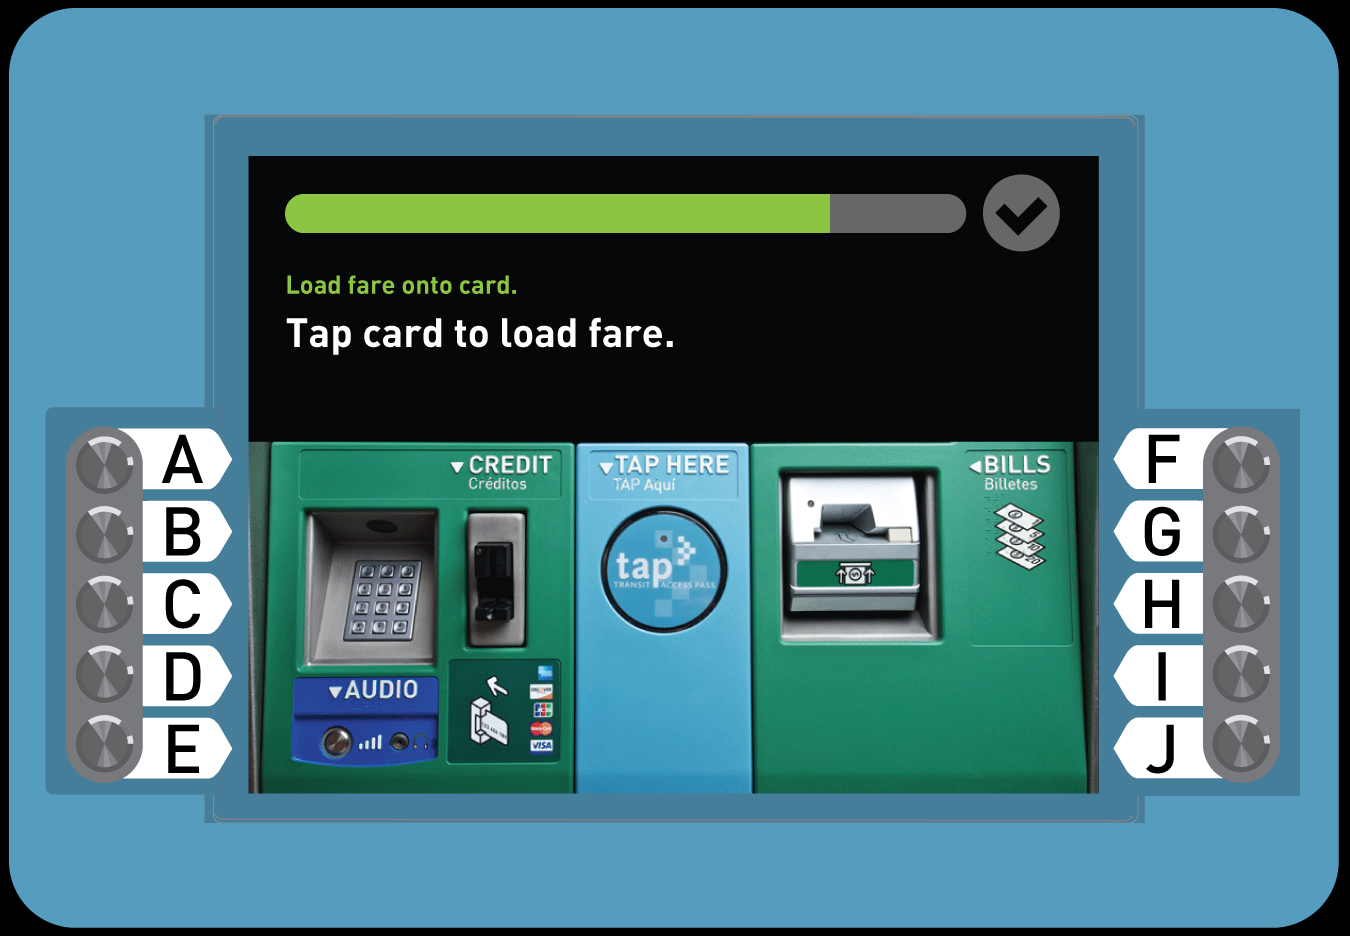 8. Buy a Senior TAP card with Stored Value